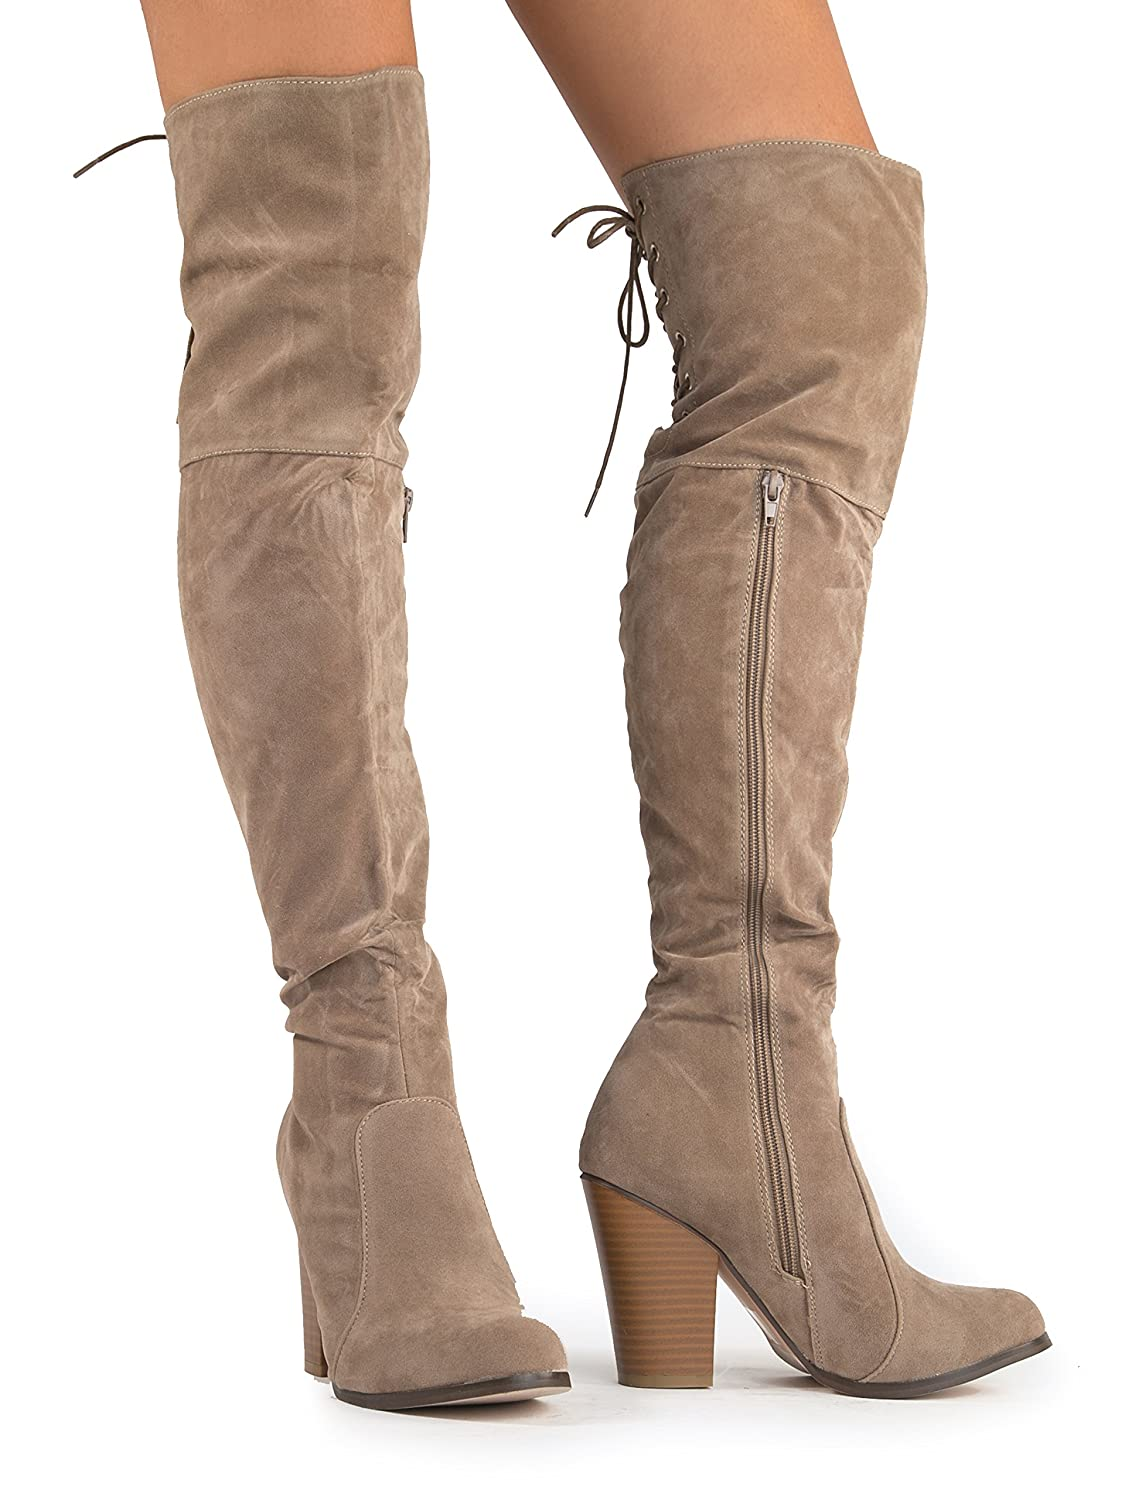 J. Adams Gorgeous Over The Knee Boot-Thigh High Boot-Comfortable Vegan Leather Tie Up Dress Faux Suede Block Heel Walking Boot by B076X8DBJR 5.5 B(M) US Taupe